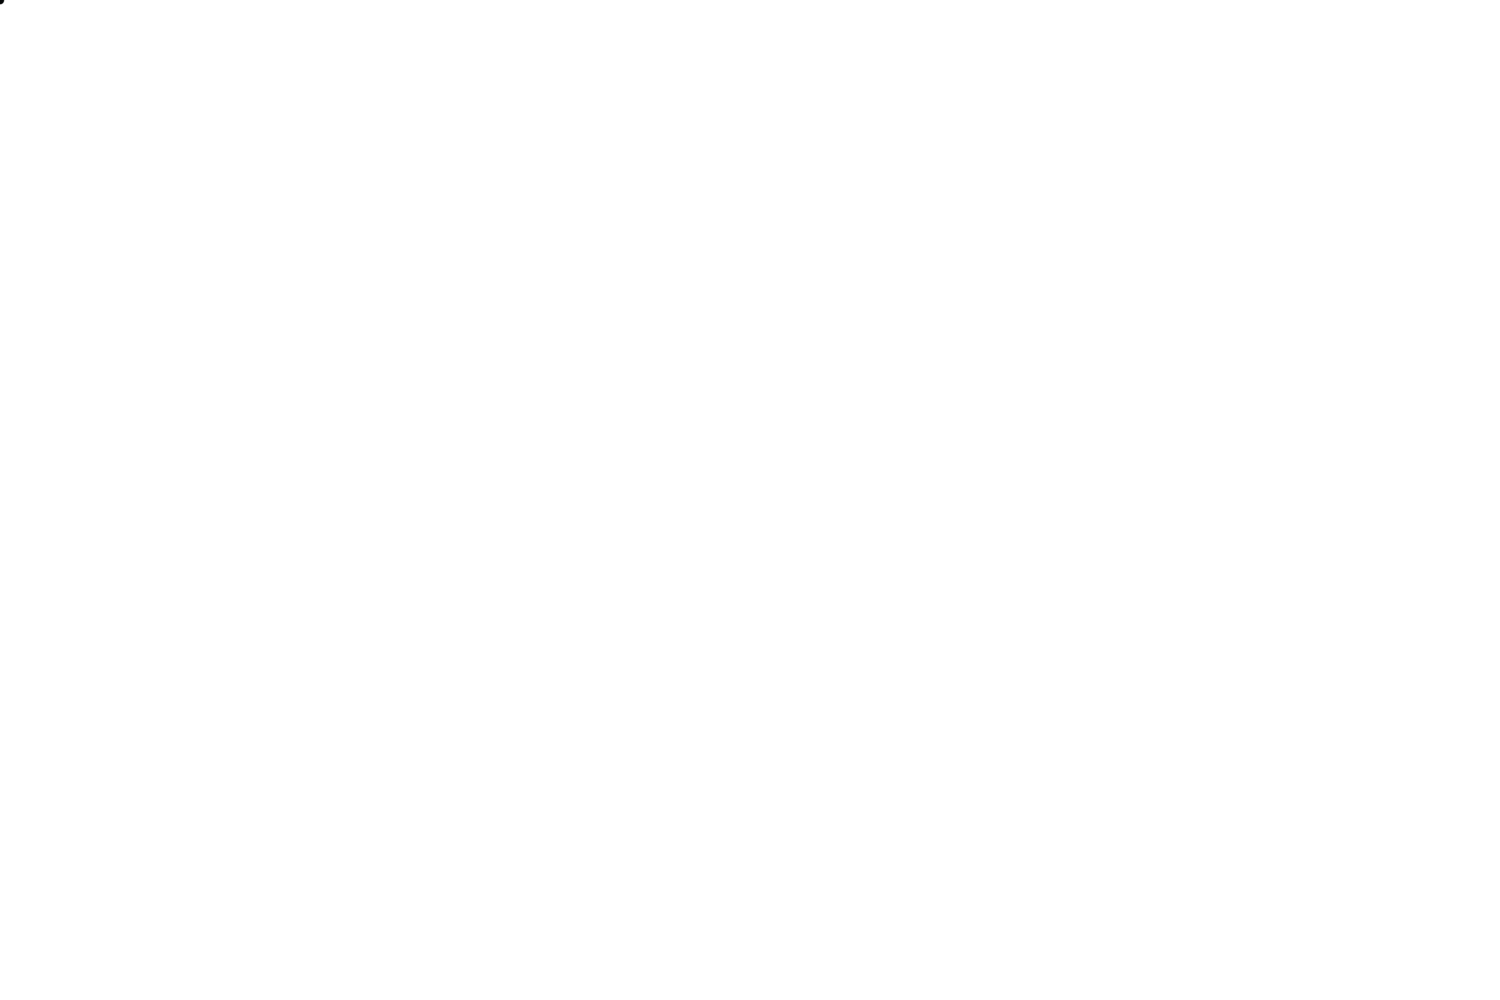 A.T. Koonce Photography